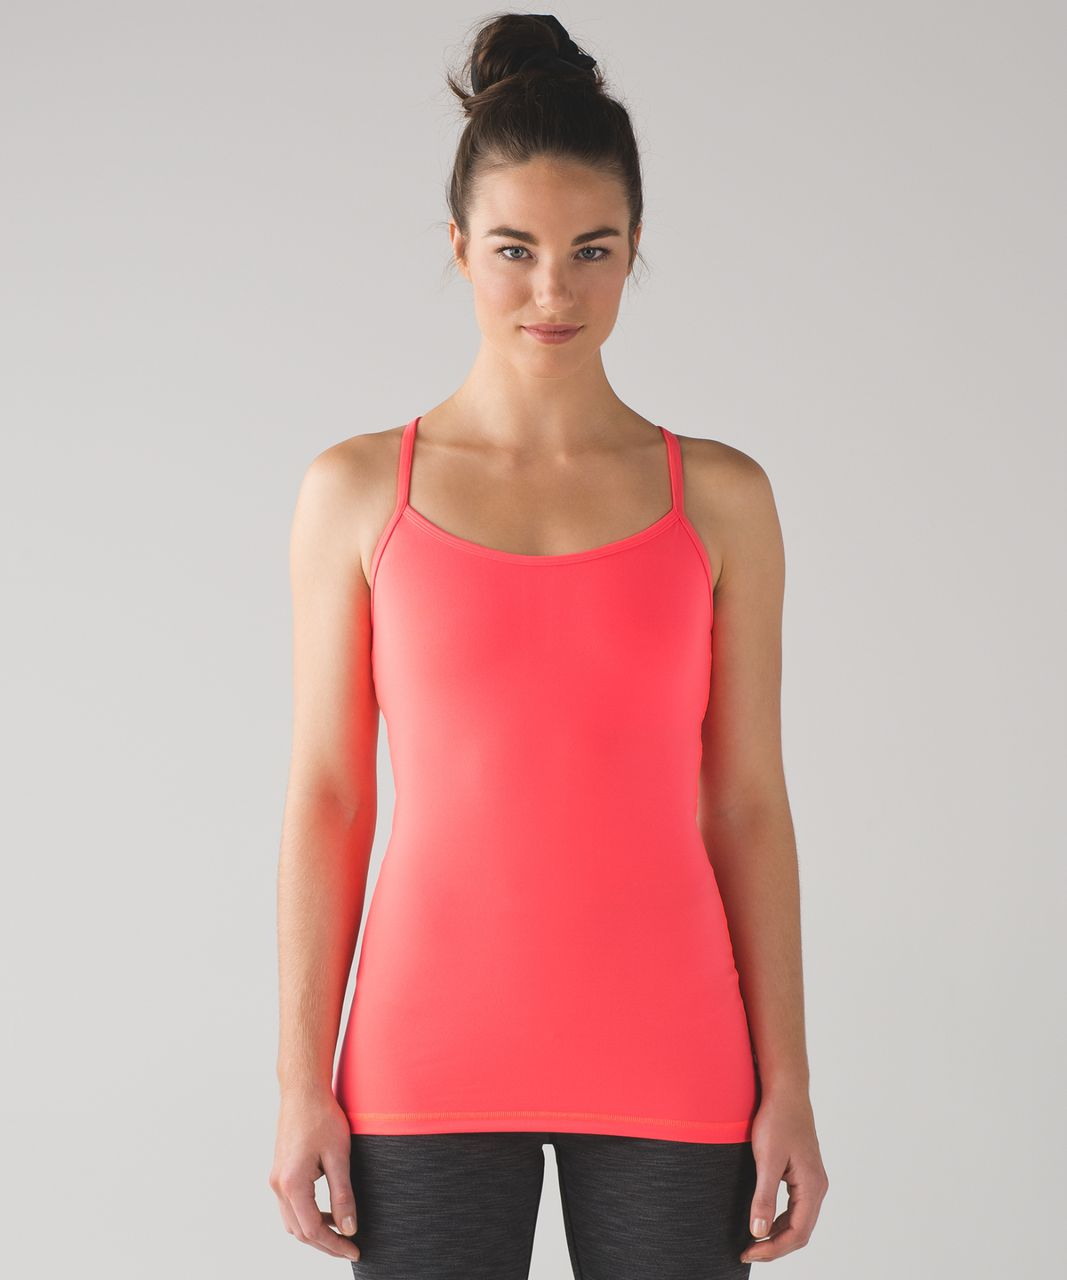 995cf3f70db48a Lululemon Power Y Tank - Electric Coral - lulu fanatics